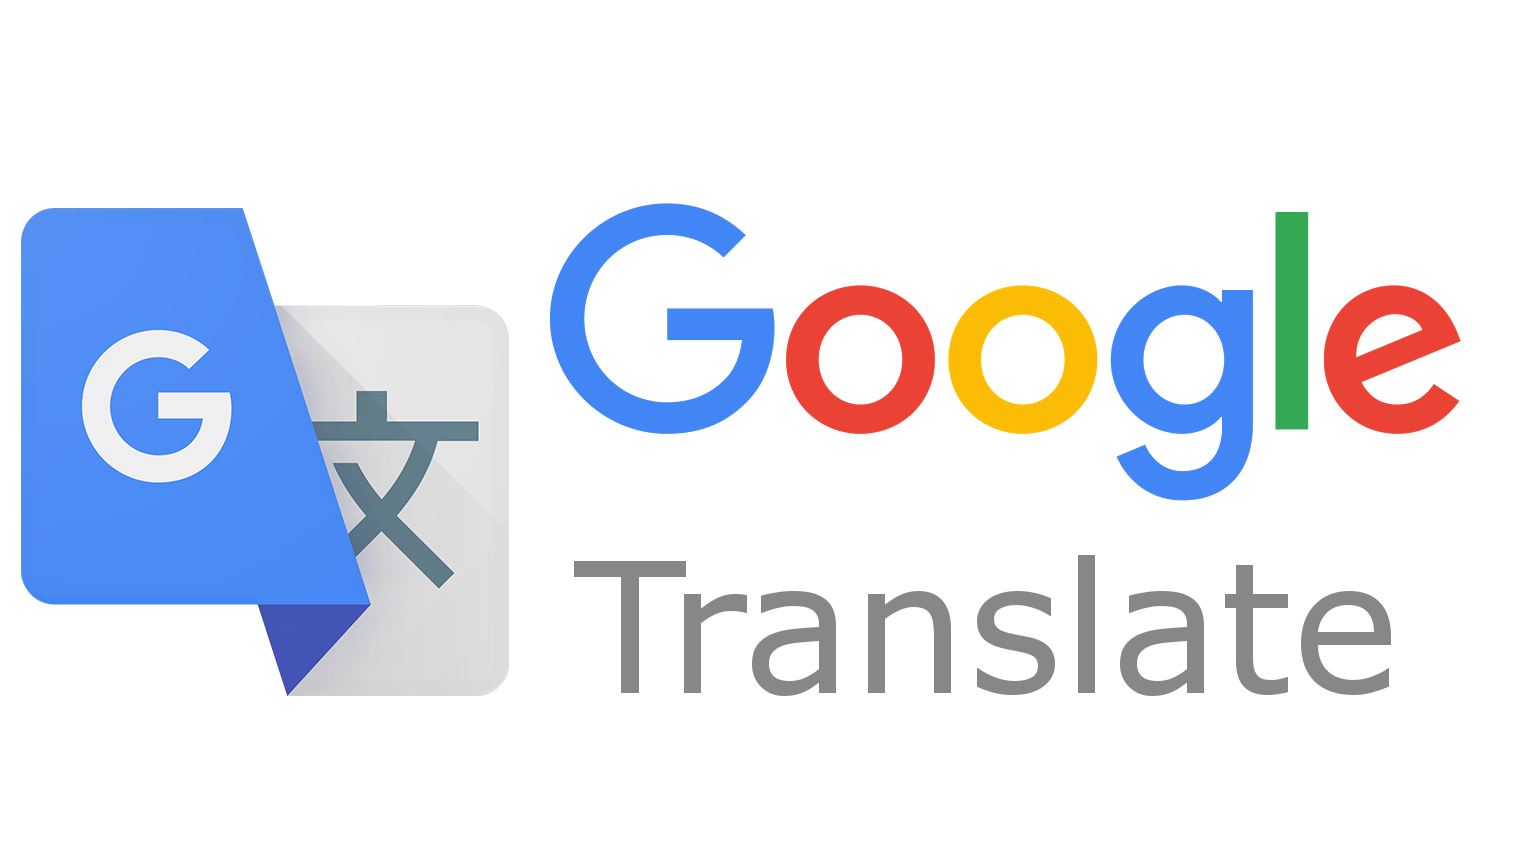 10 Reasons Why Google Translate is not good - Translinguo ...